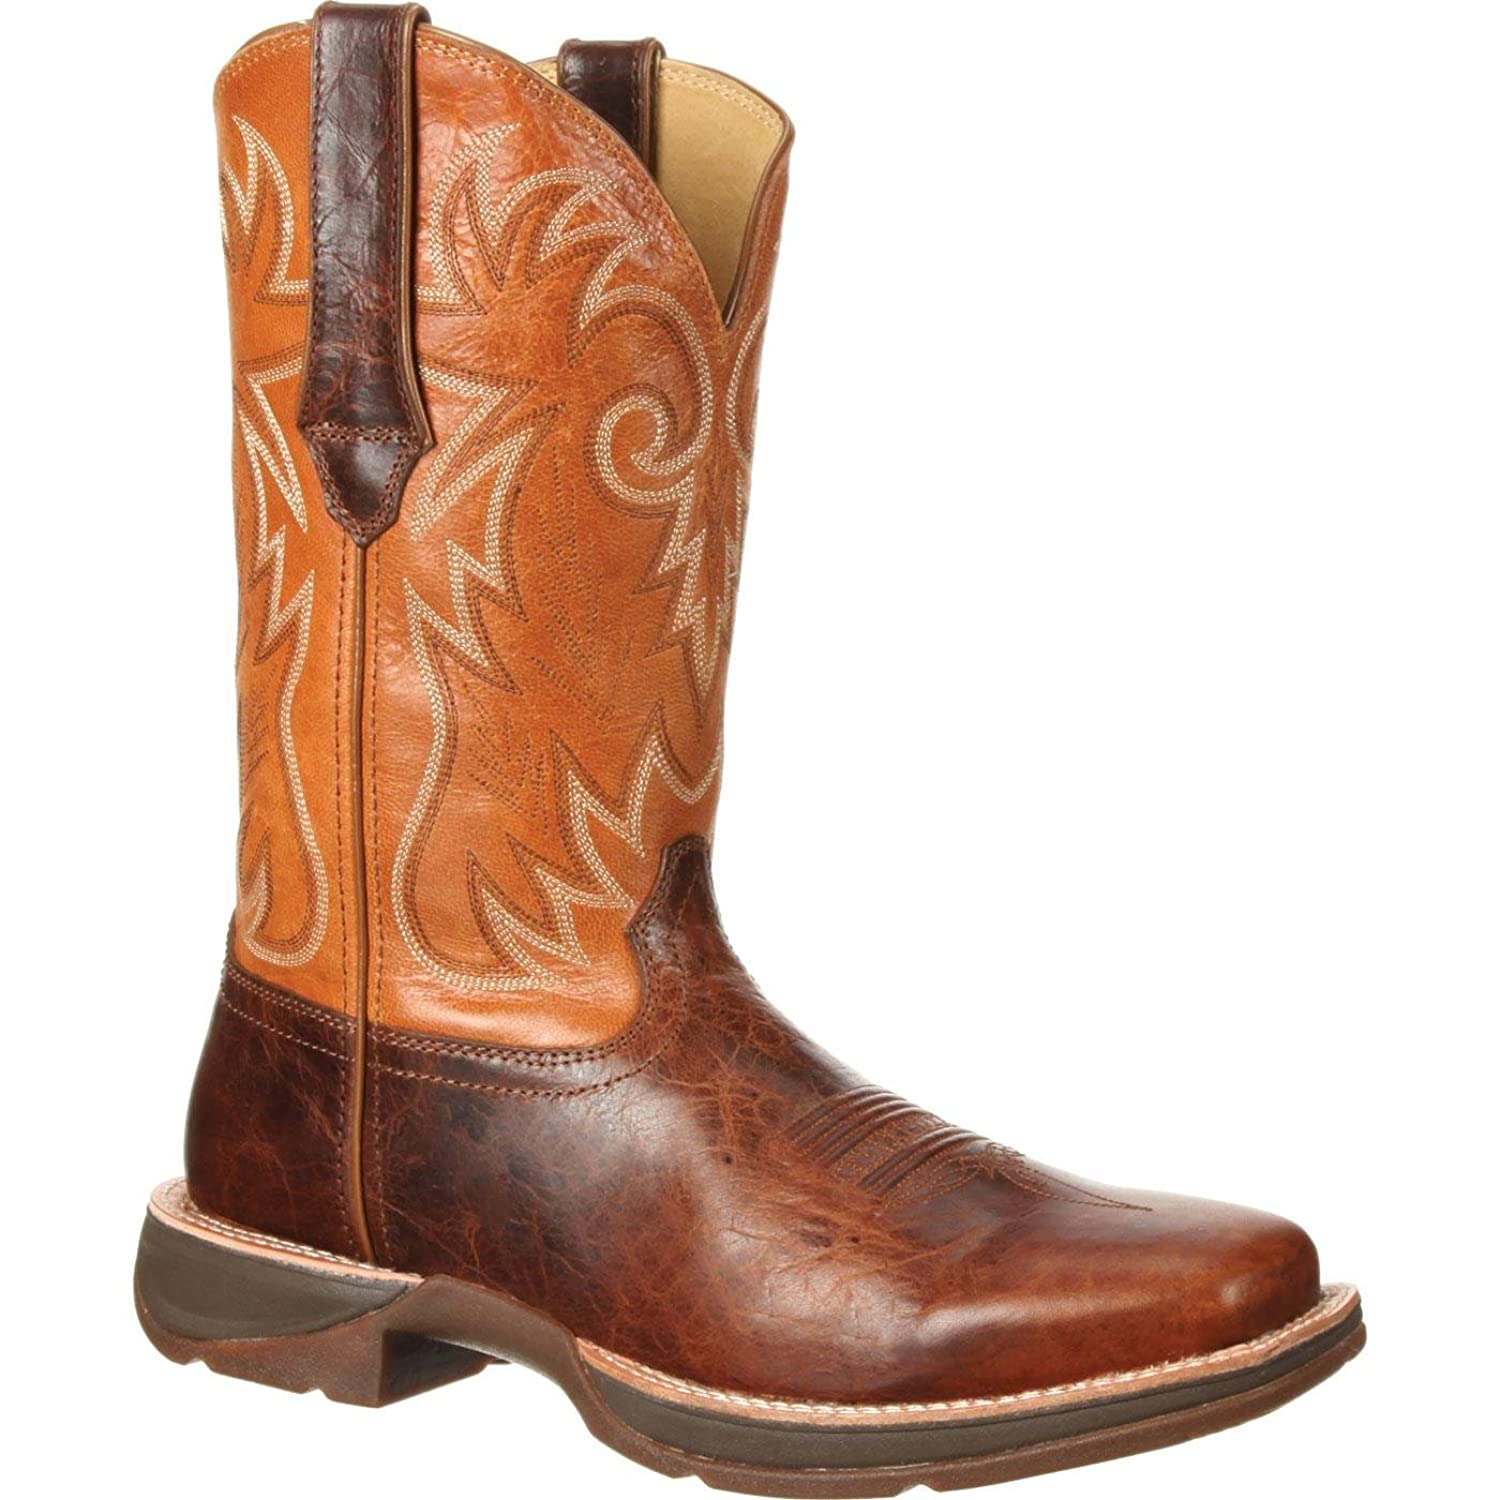 859877f302dfdf chic Ramped Up Rebel by Durango Mens s 12